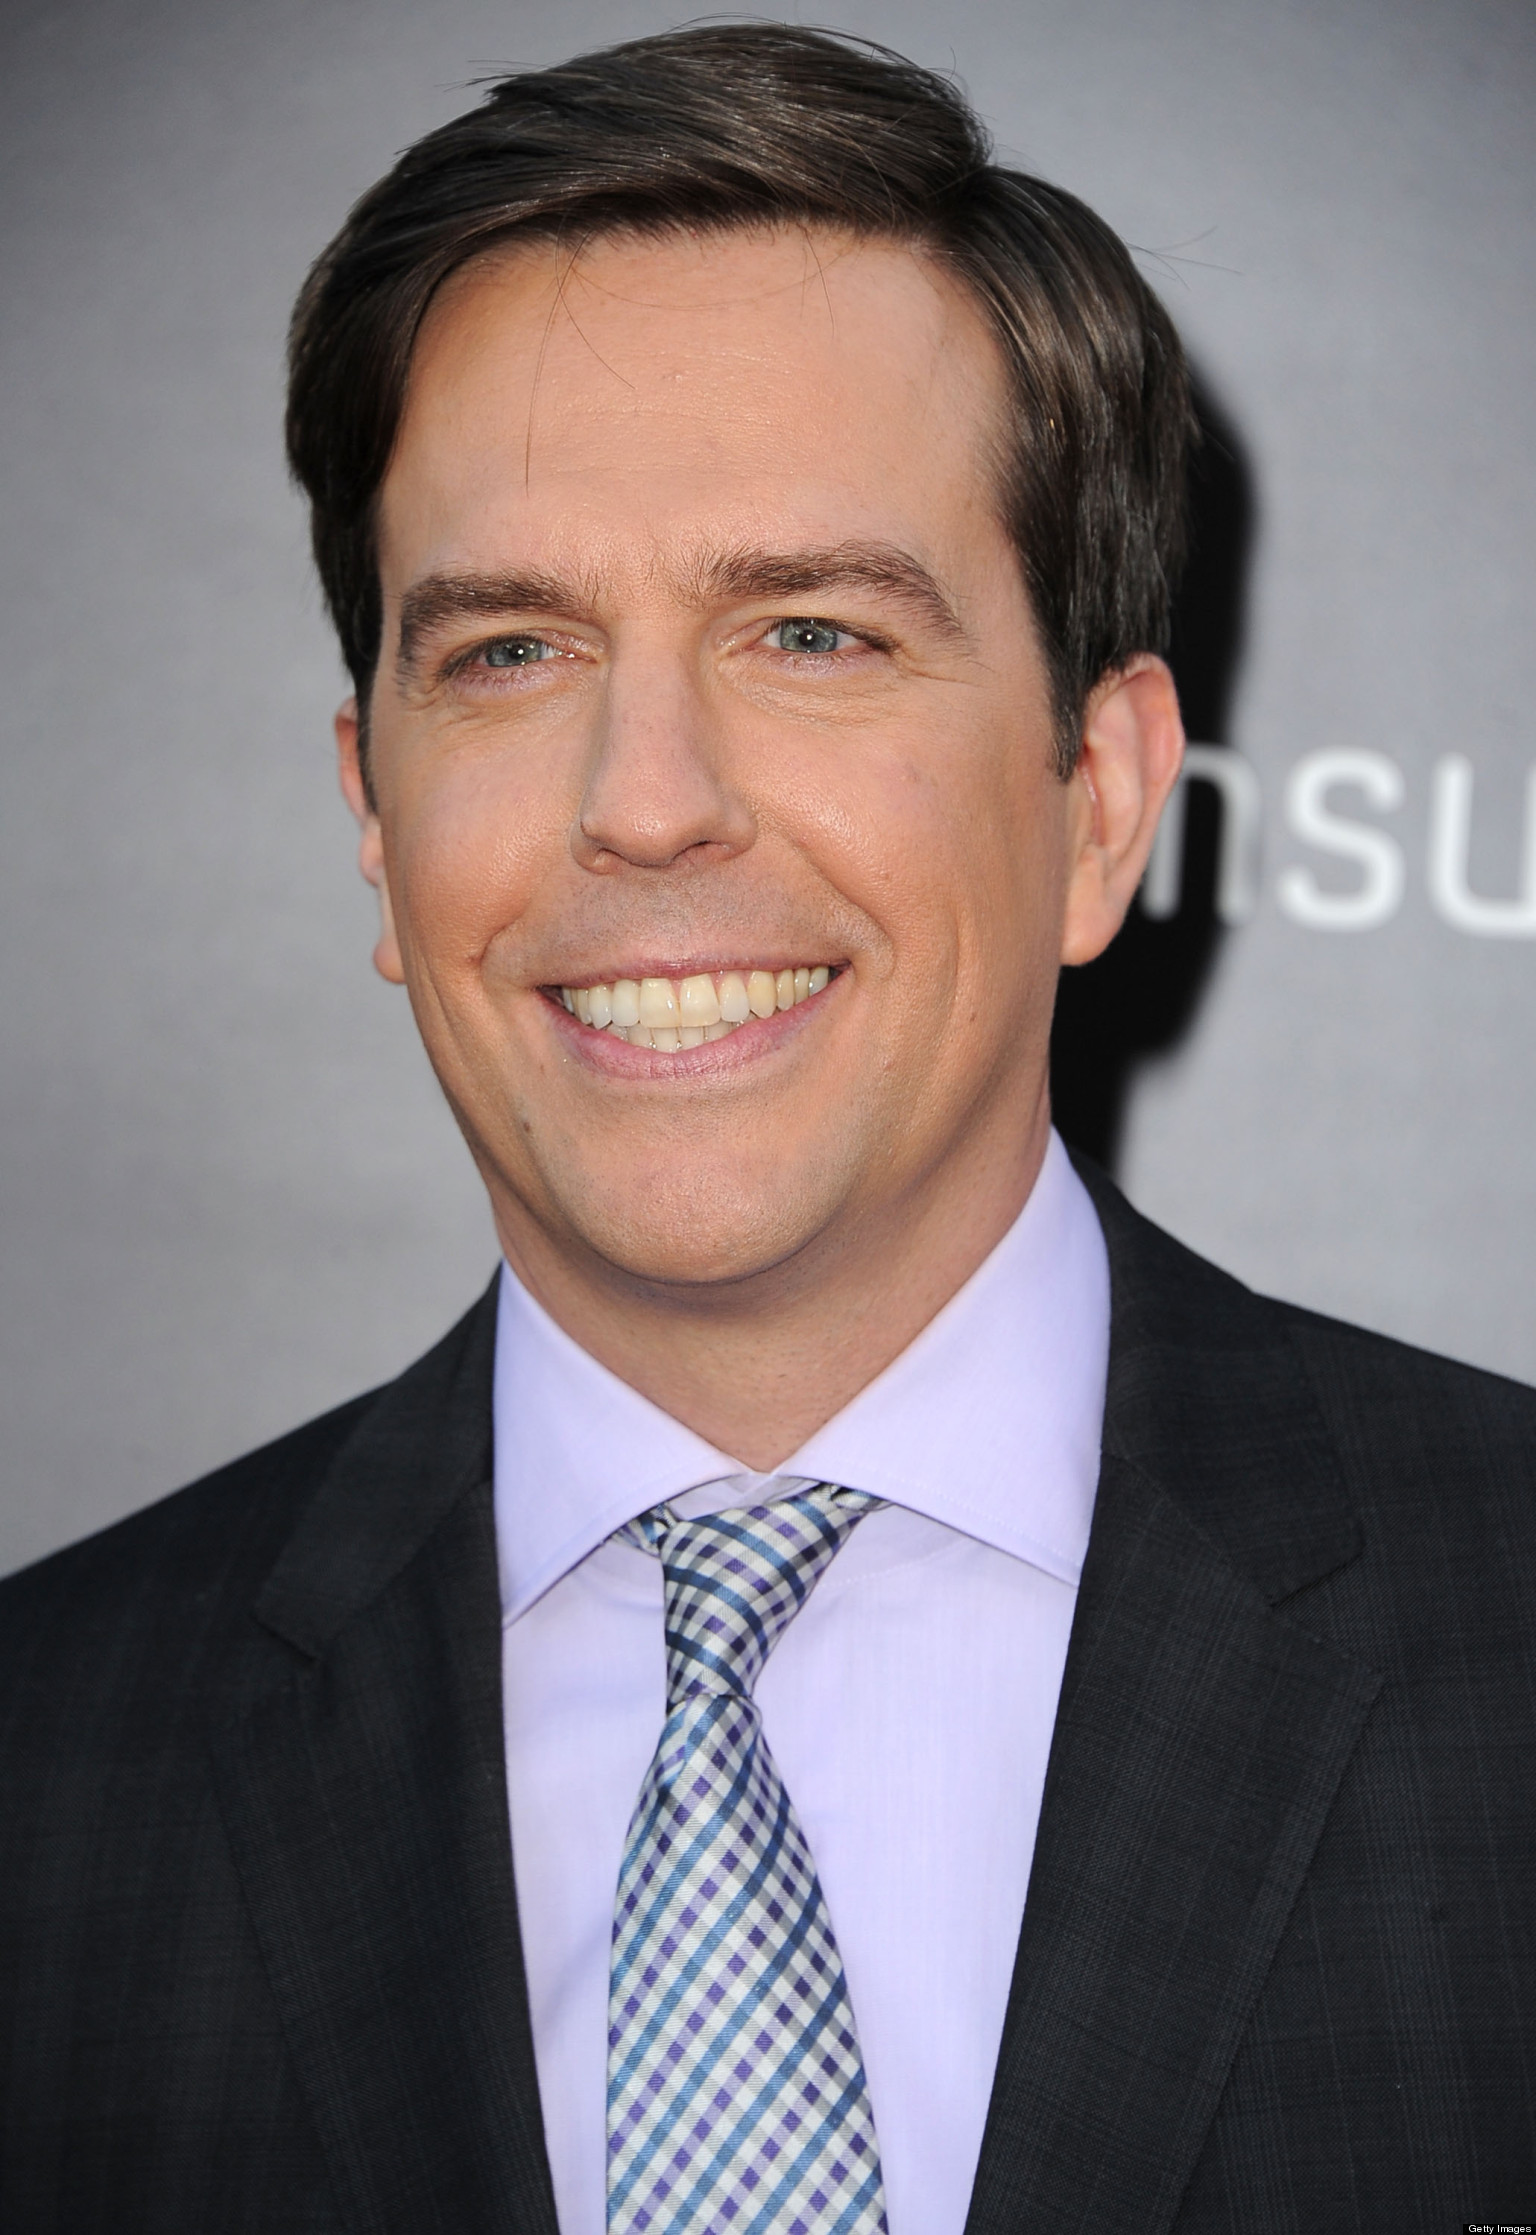 Ed Helms' Graduation Photo Shows The Actor Looking A Lot ...